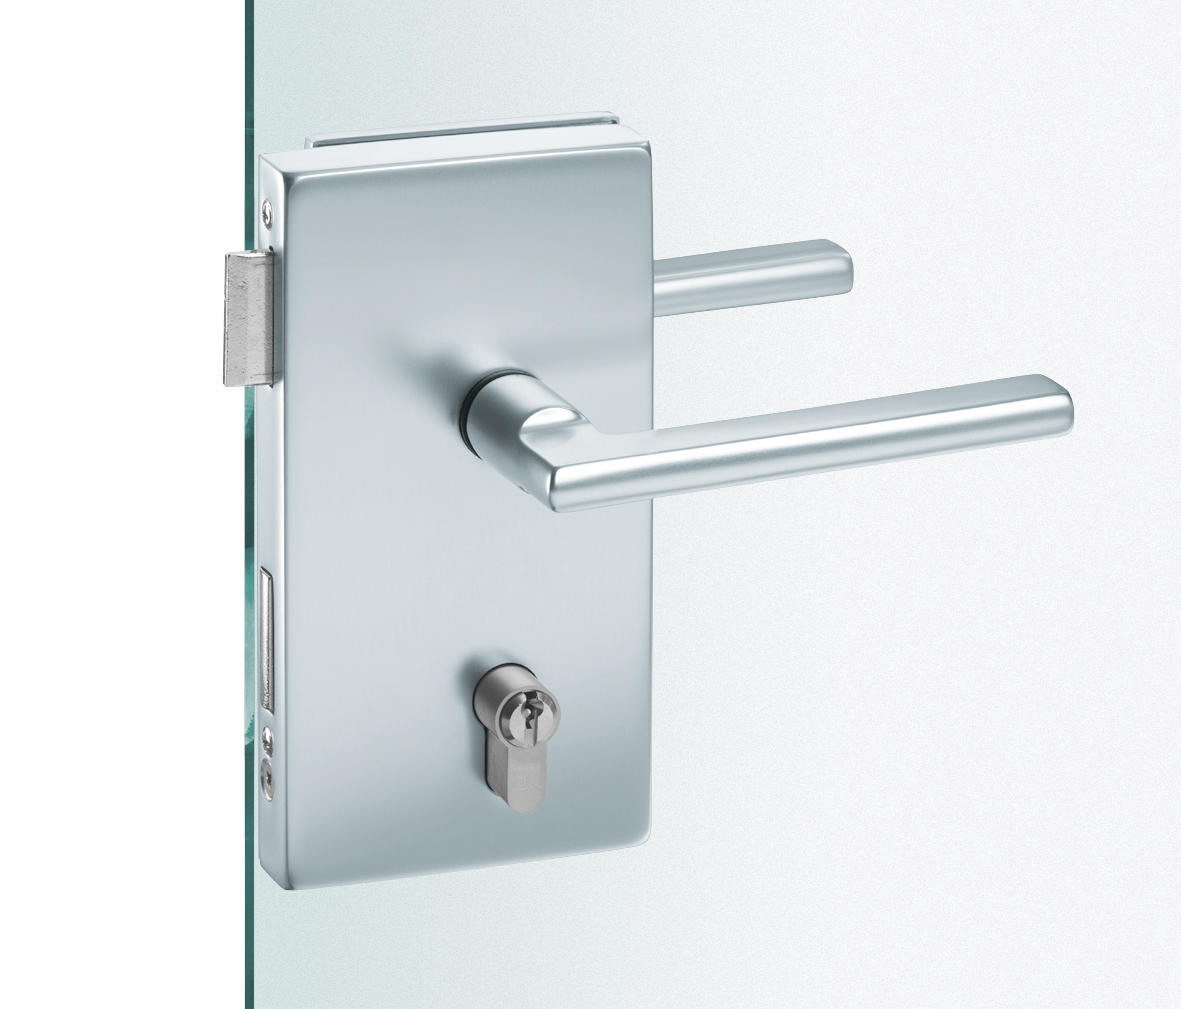 FSB 13 4220 Glass door fitting by FSB | Handle sets for glass doors  sc 1 st  Architonic & FSB 13 4220 GLASS DOOR FITTING - Handle sets for glass doors from ...